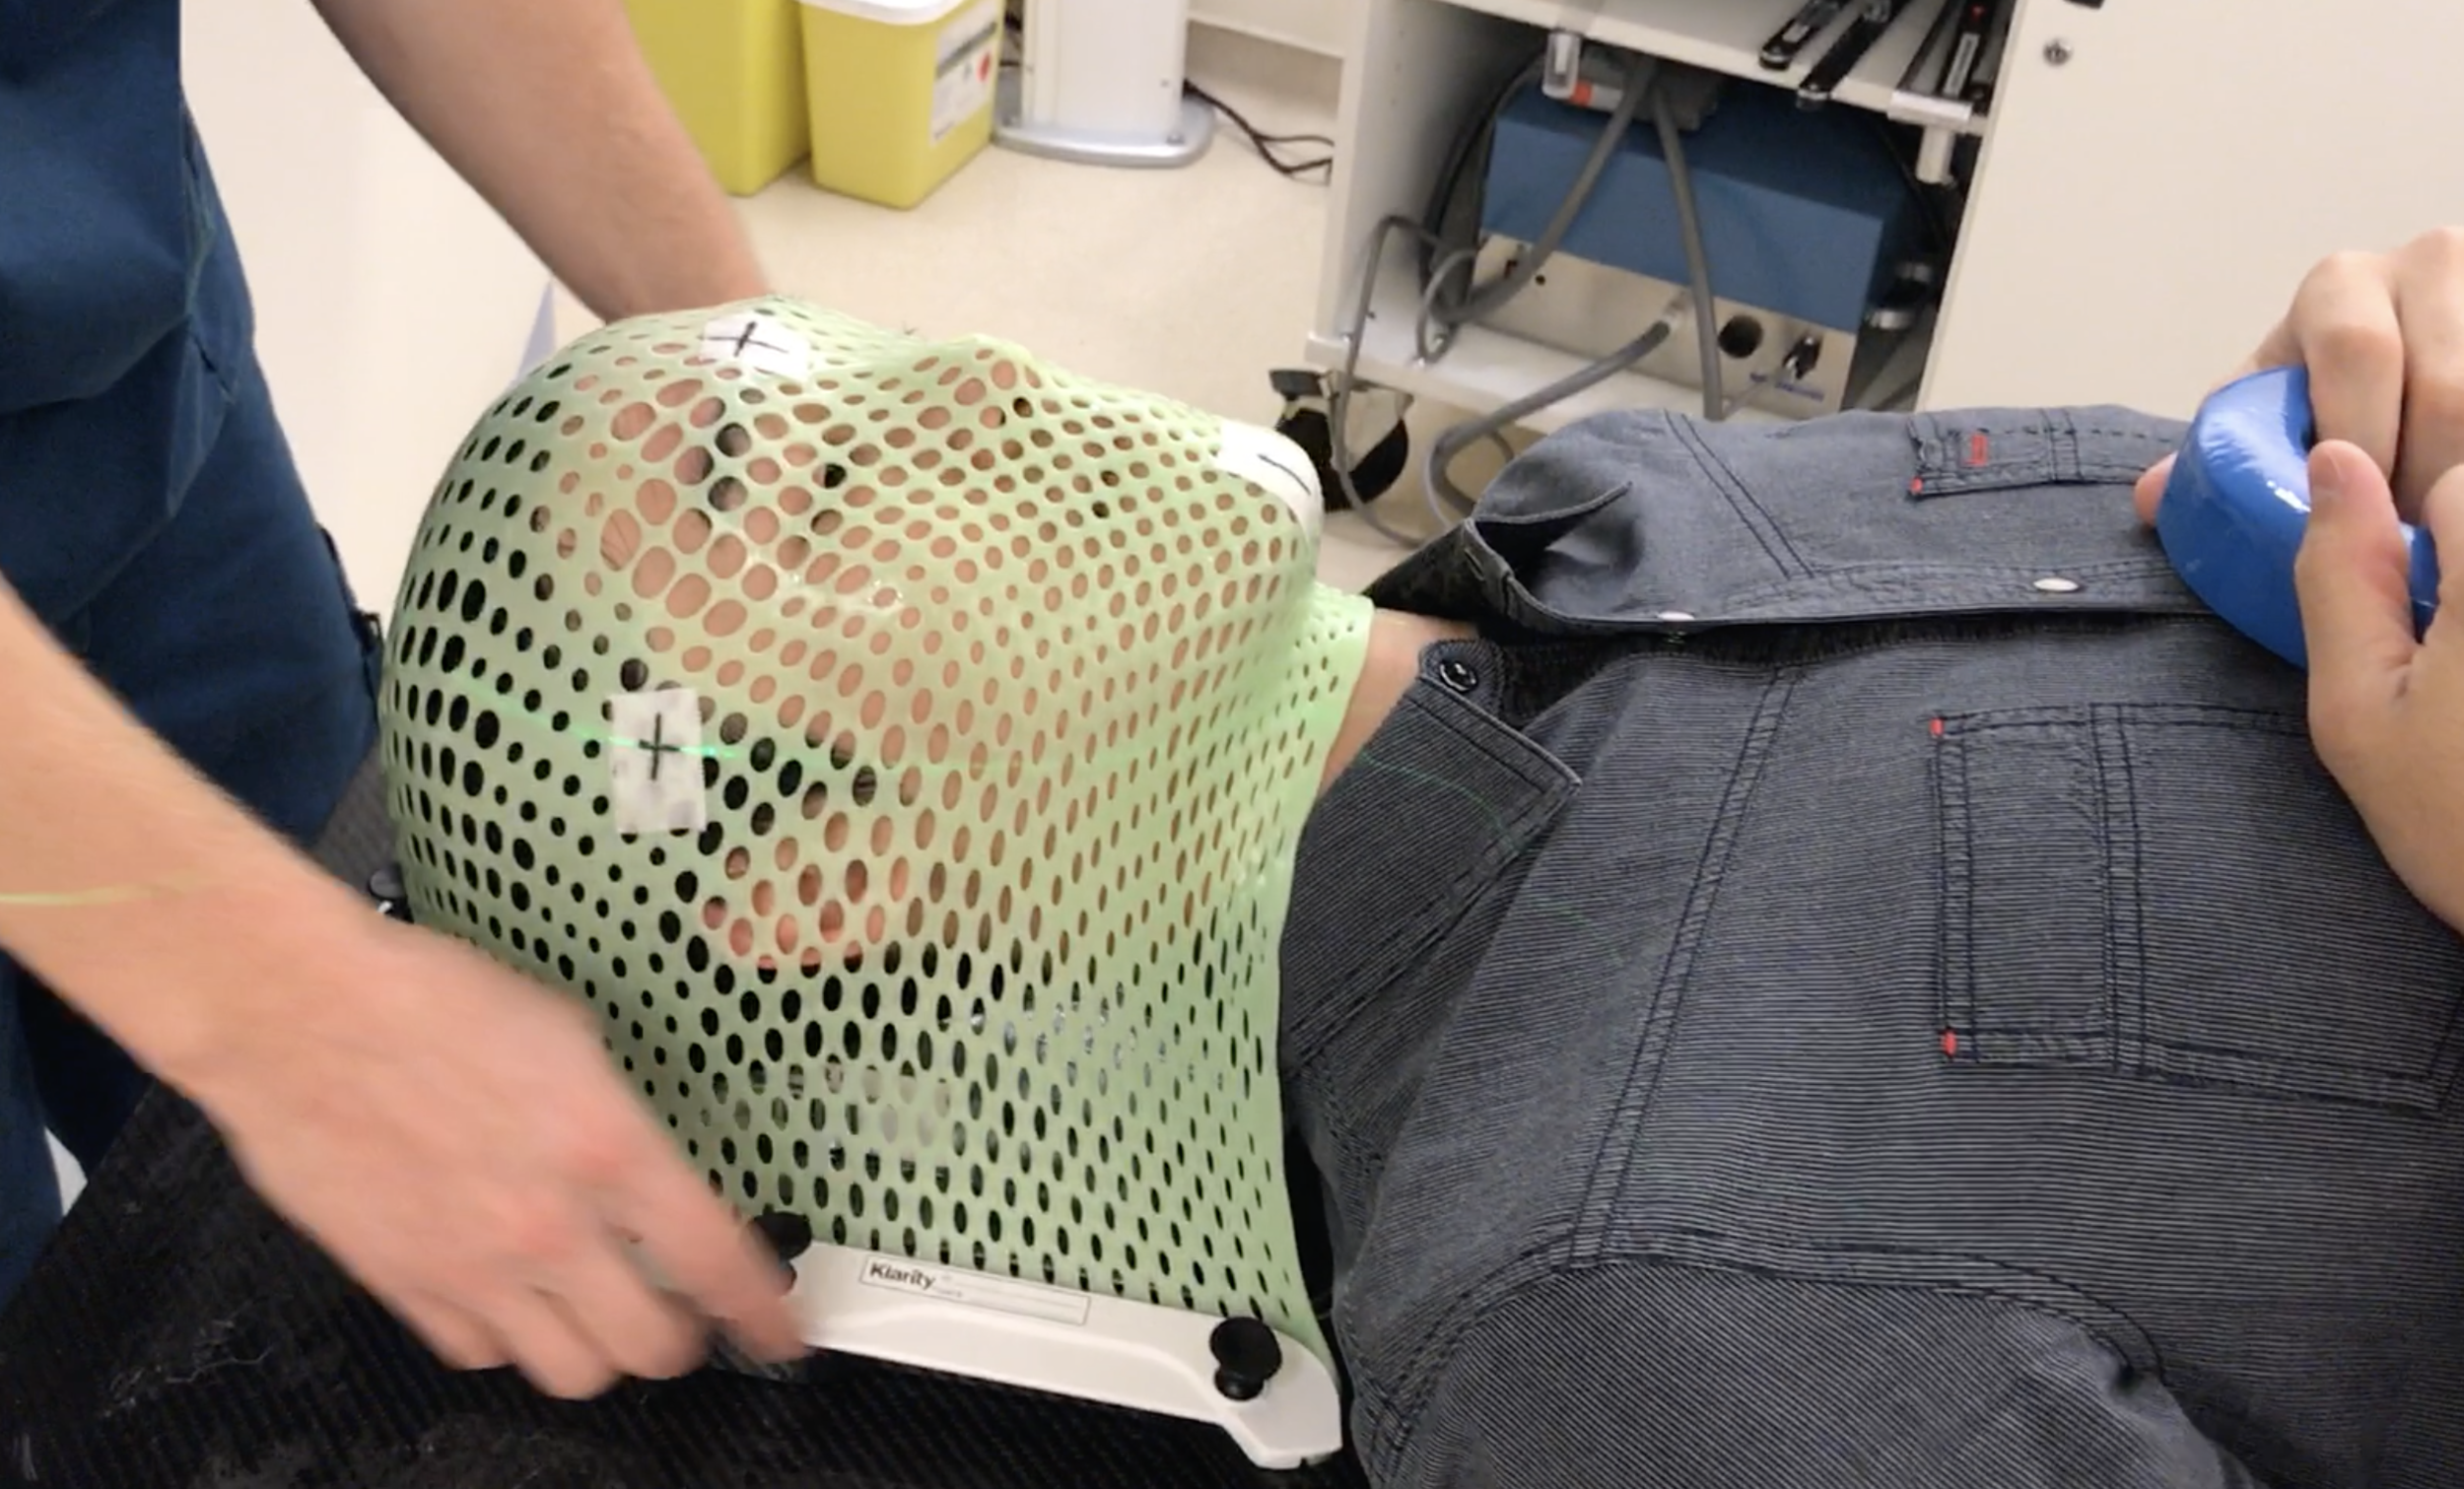 I experienced the creation of a proton therapy immobilization mask to understand the patient experience. - Research visit to the Chicago Proton Center